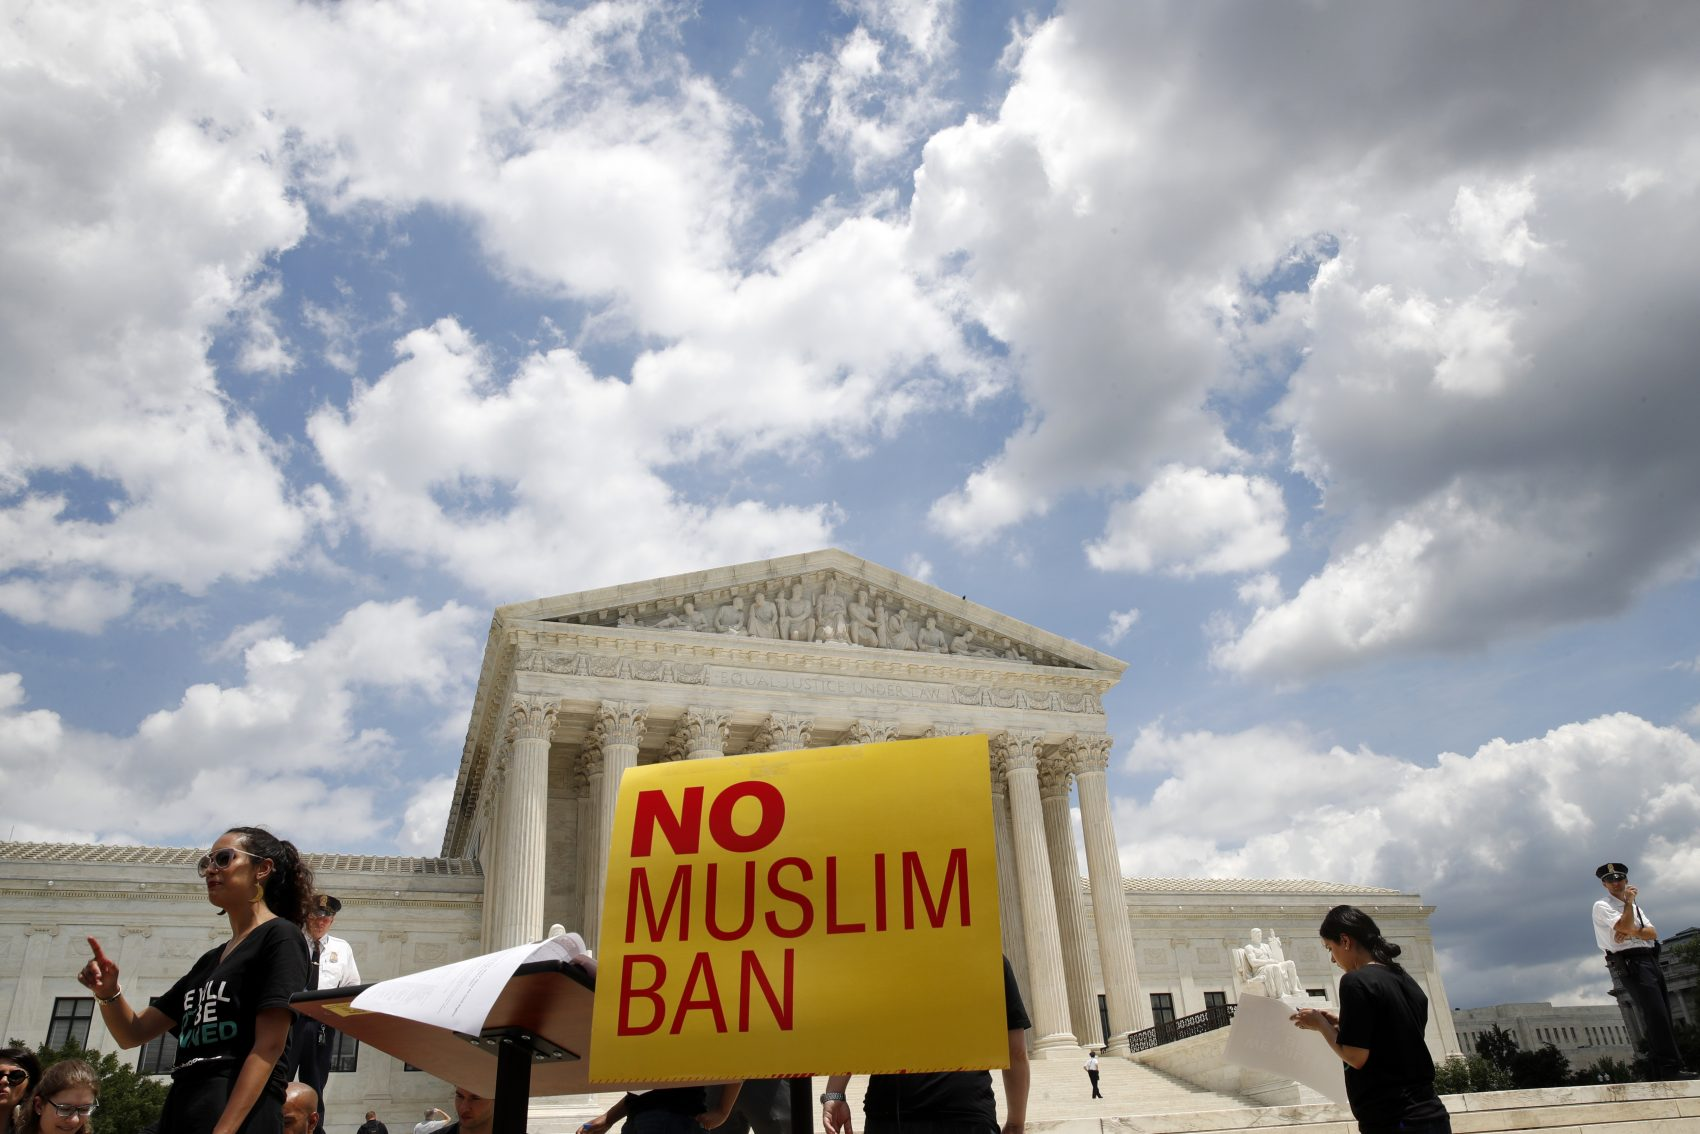 People protest Tuesday against the Supreme Court ruling upholding President Trump's travel ban. (Jacquelyn Martin/AP)